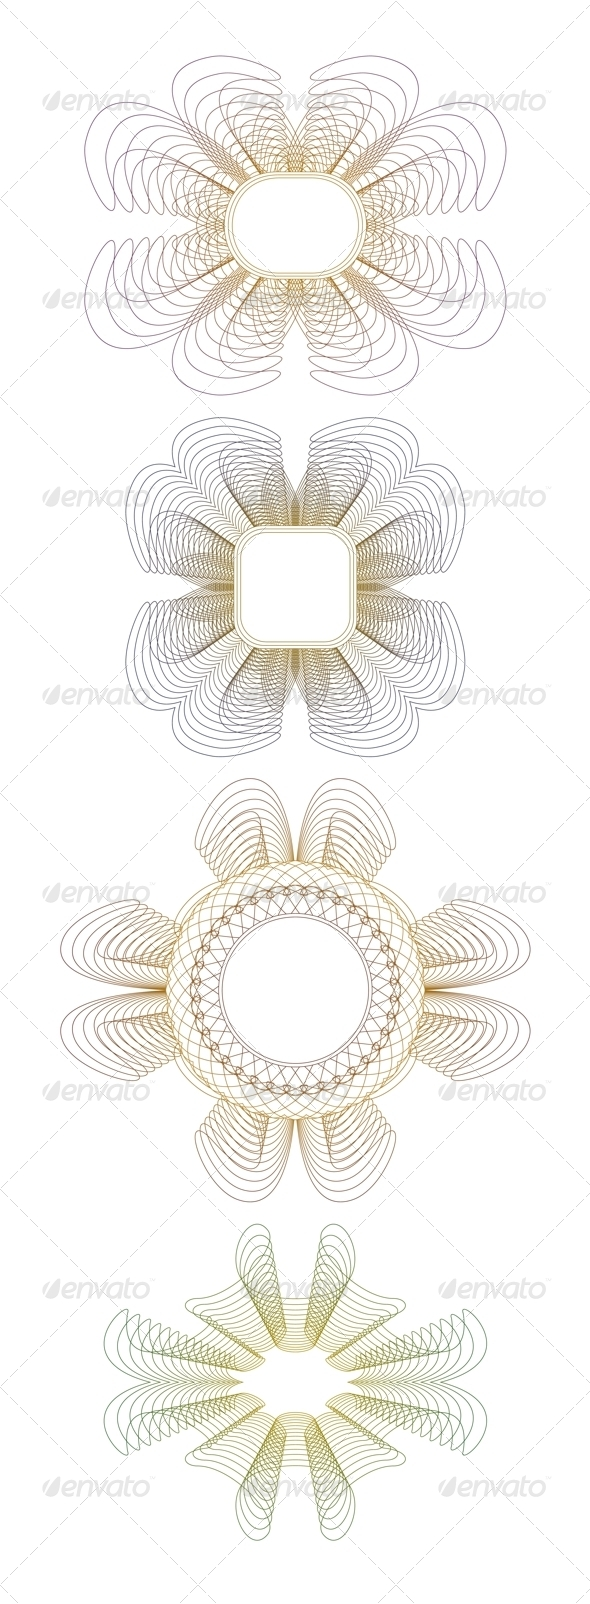 GraphicRiver Collection of Guilloche Rosettes 6591202